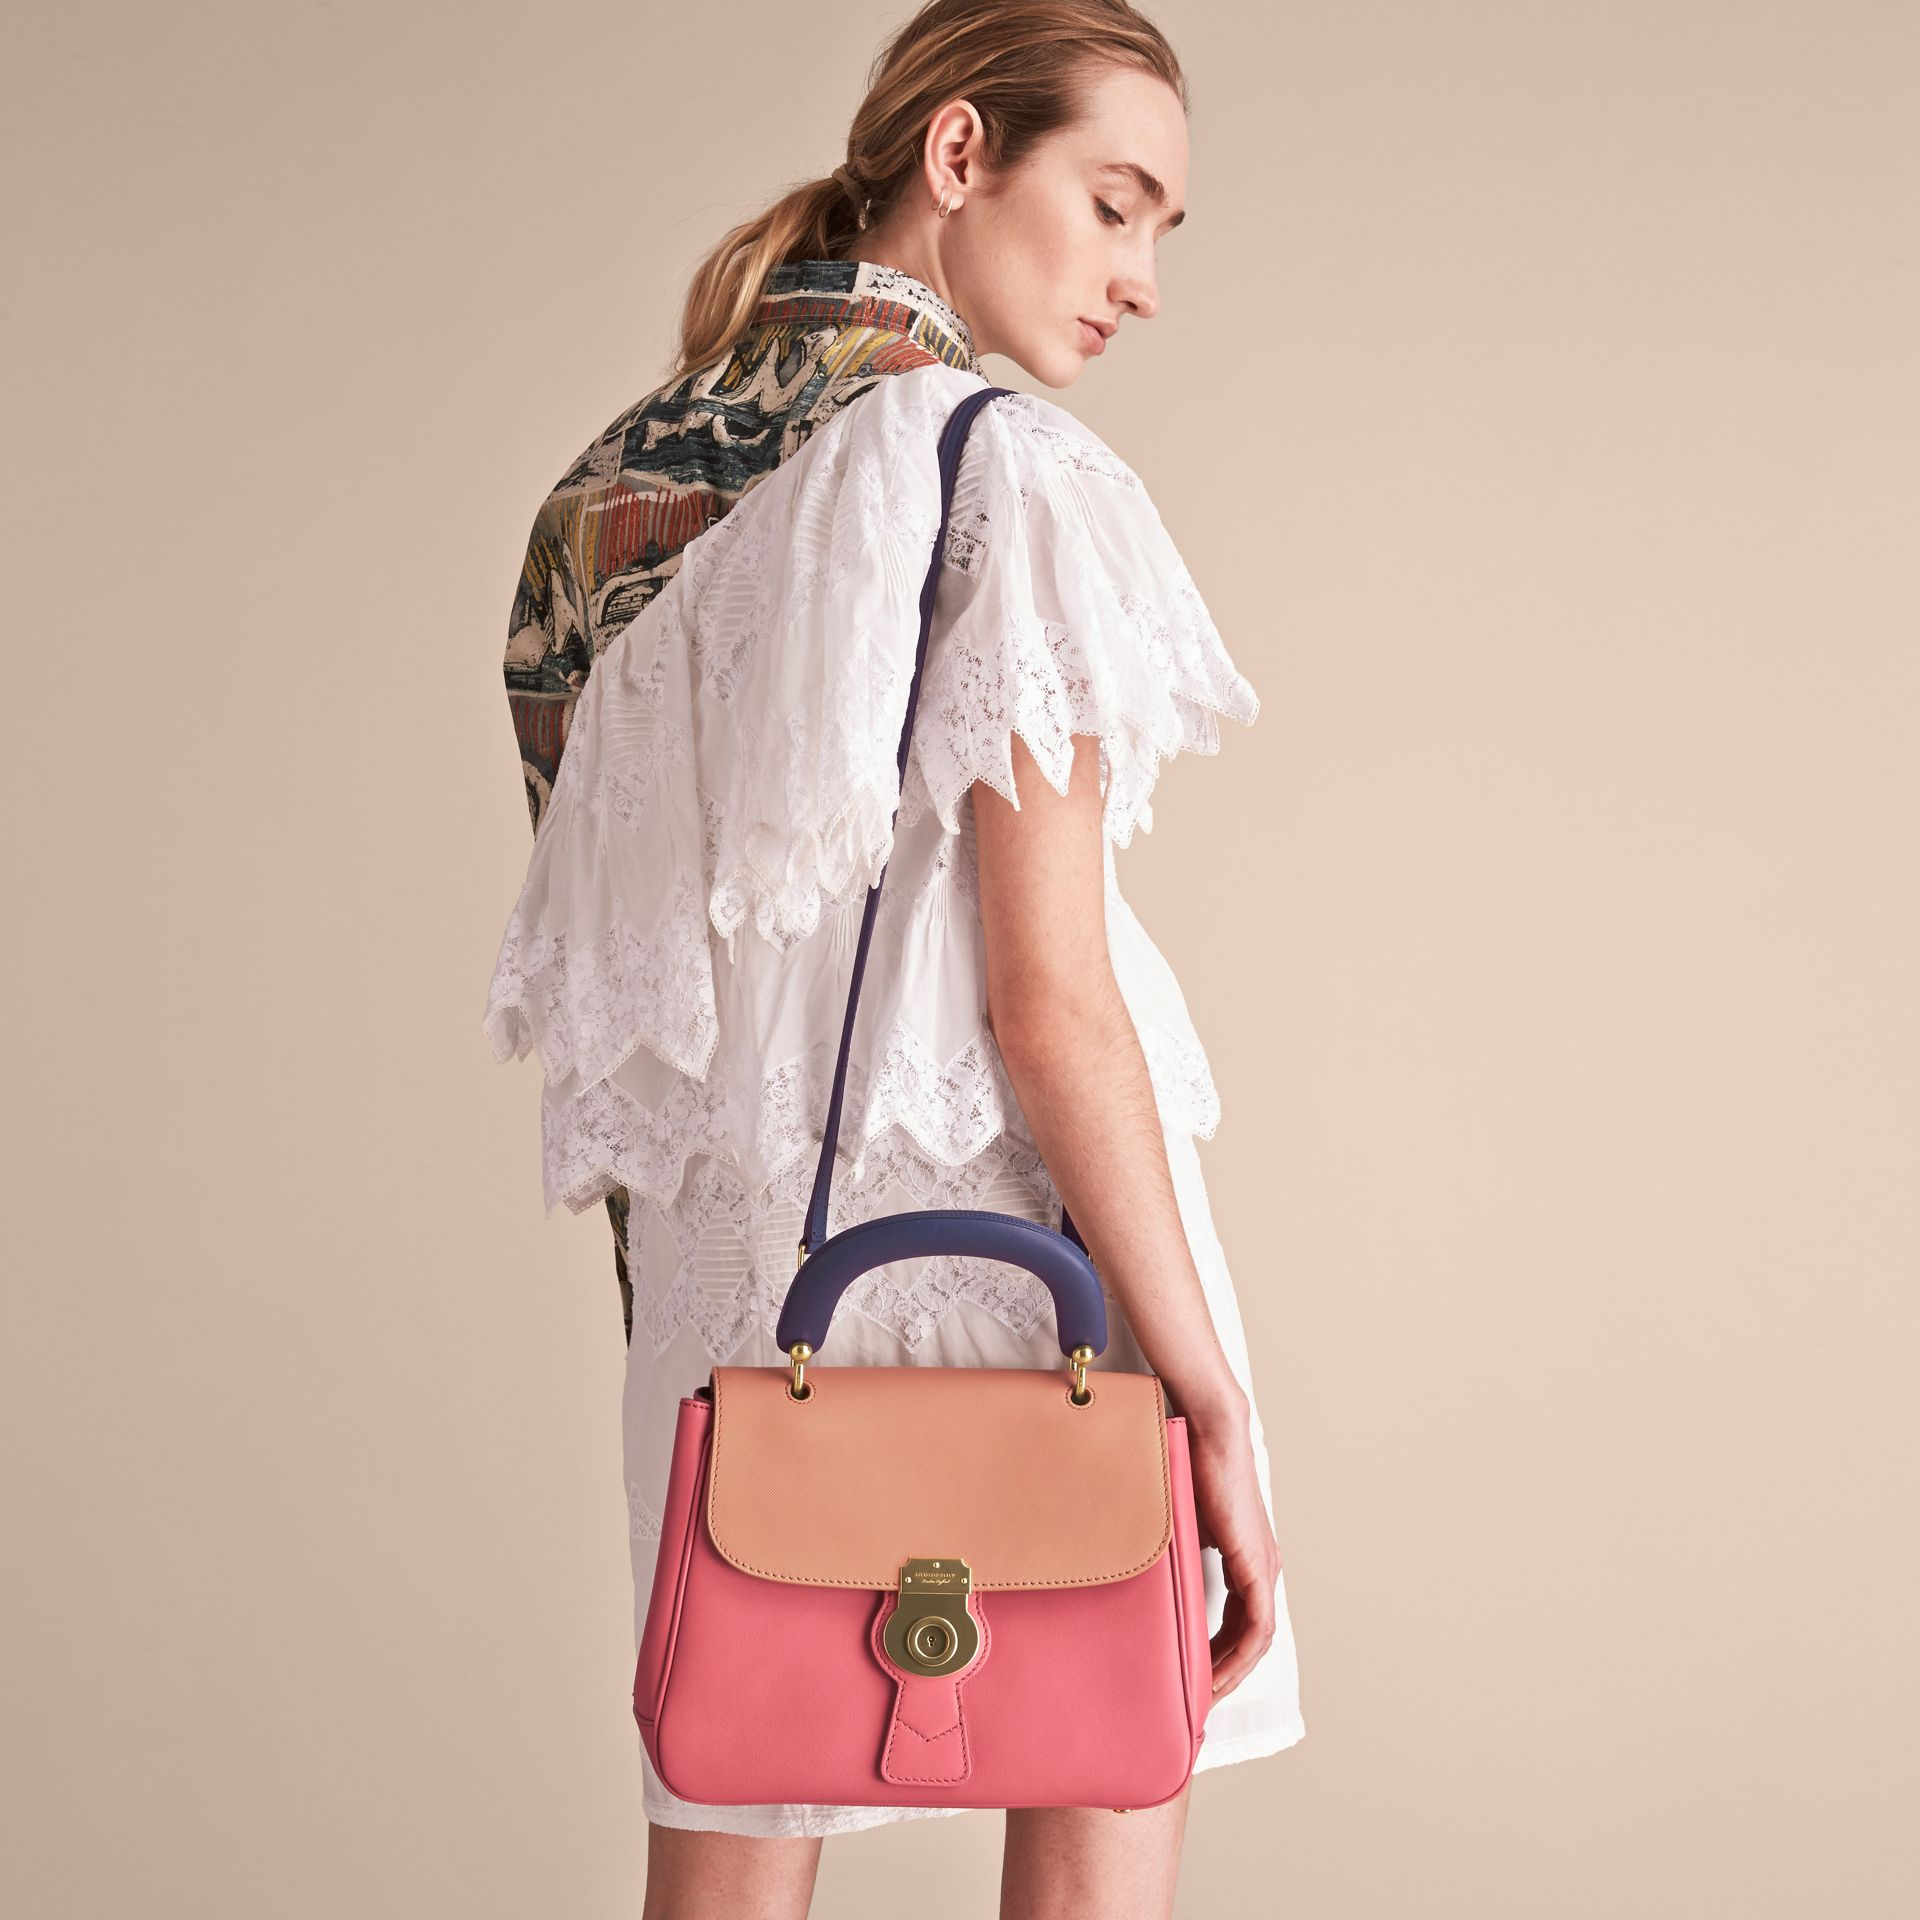 The Medium DK88 Top Handle Bag in Blossom Pink/pale Clementine - Women | Burberry - gallery image 7